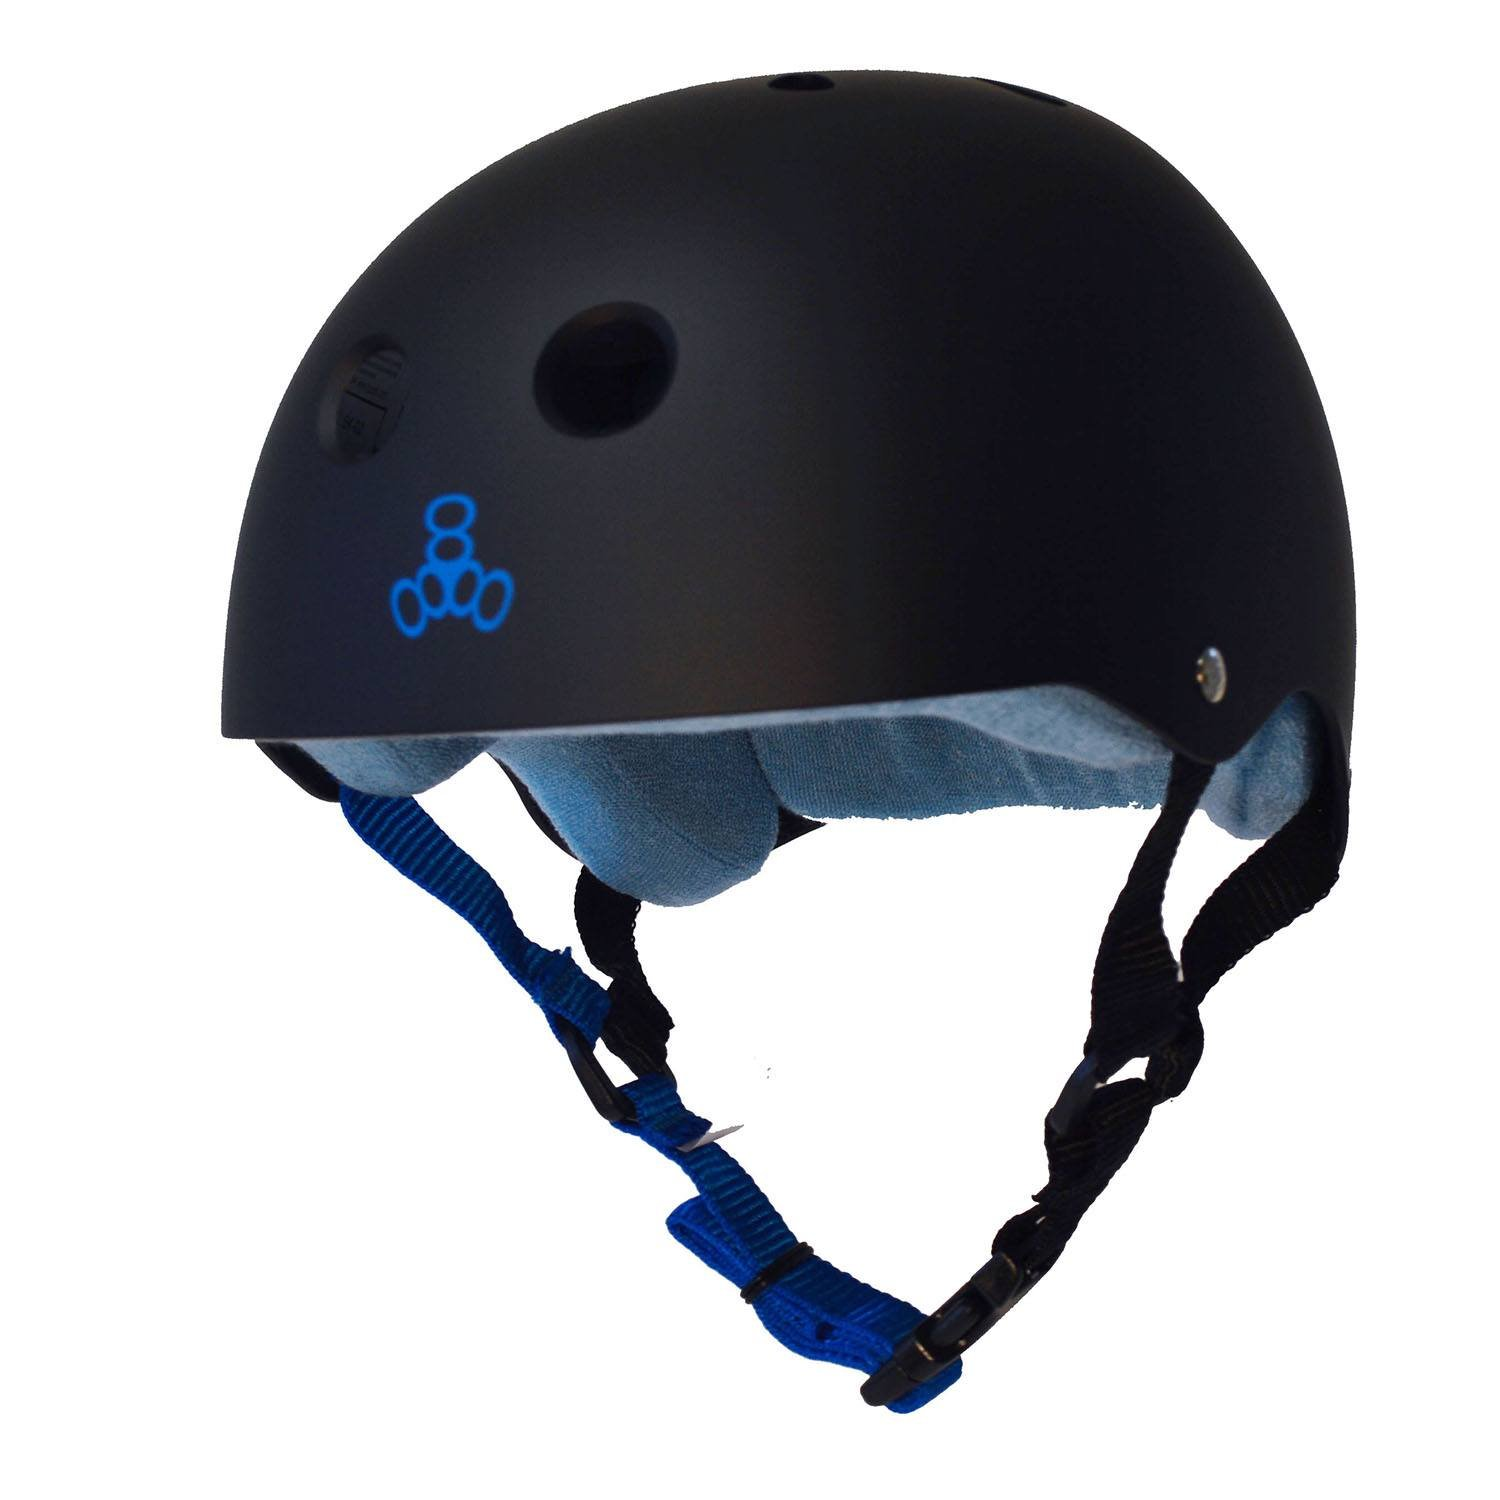 Triple 8 Sweatsaver Helmet-Black//Blue-Large